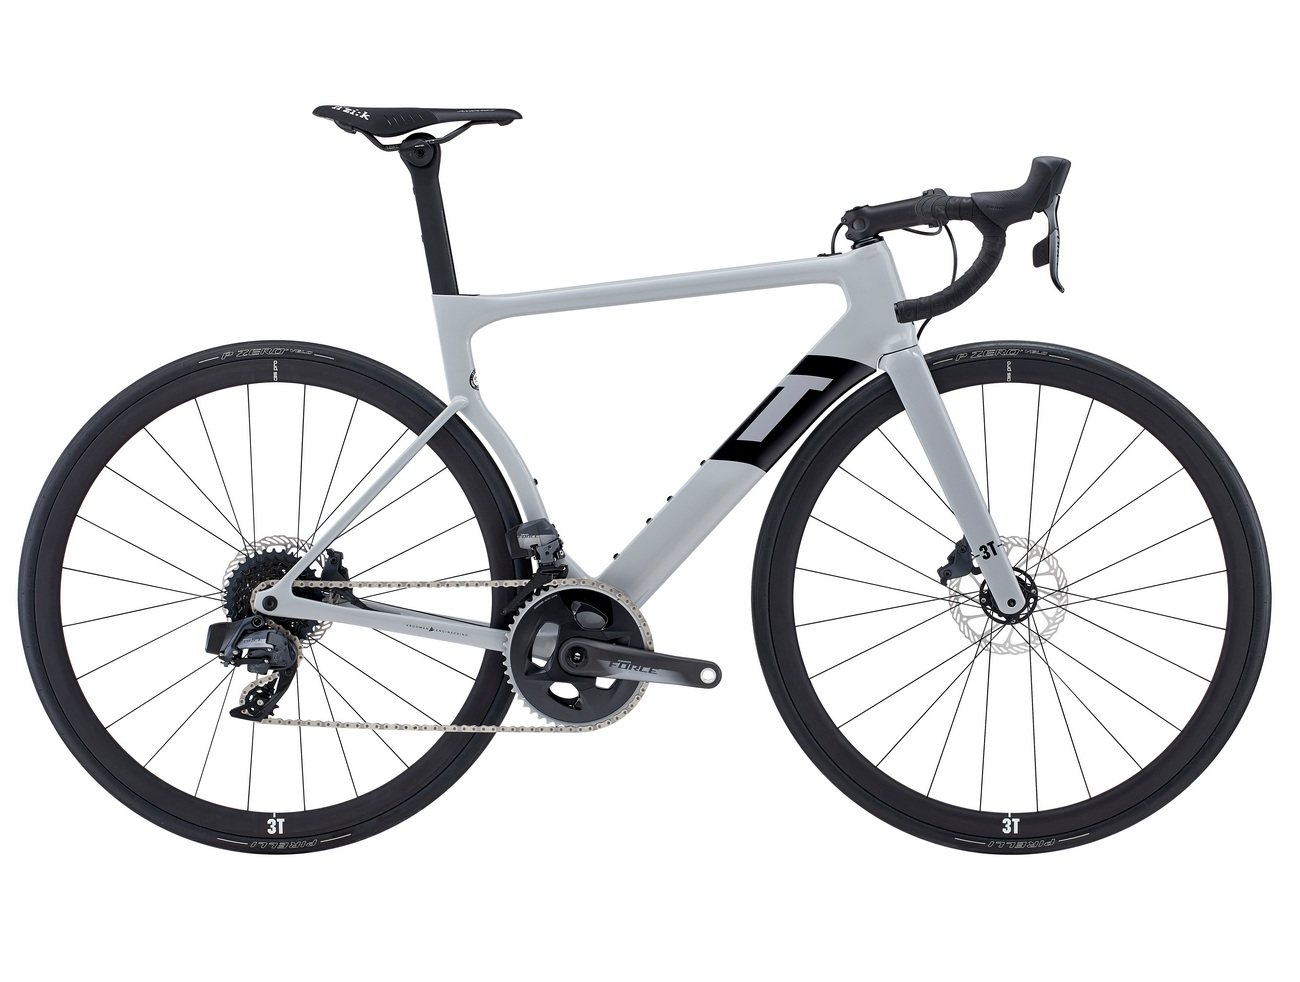 Strada Due TEAM FORCE AXS eTap